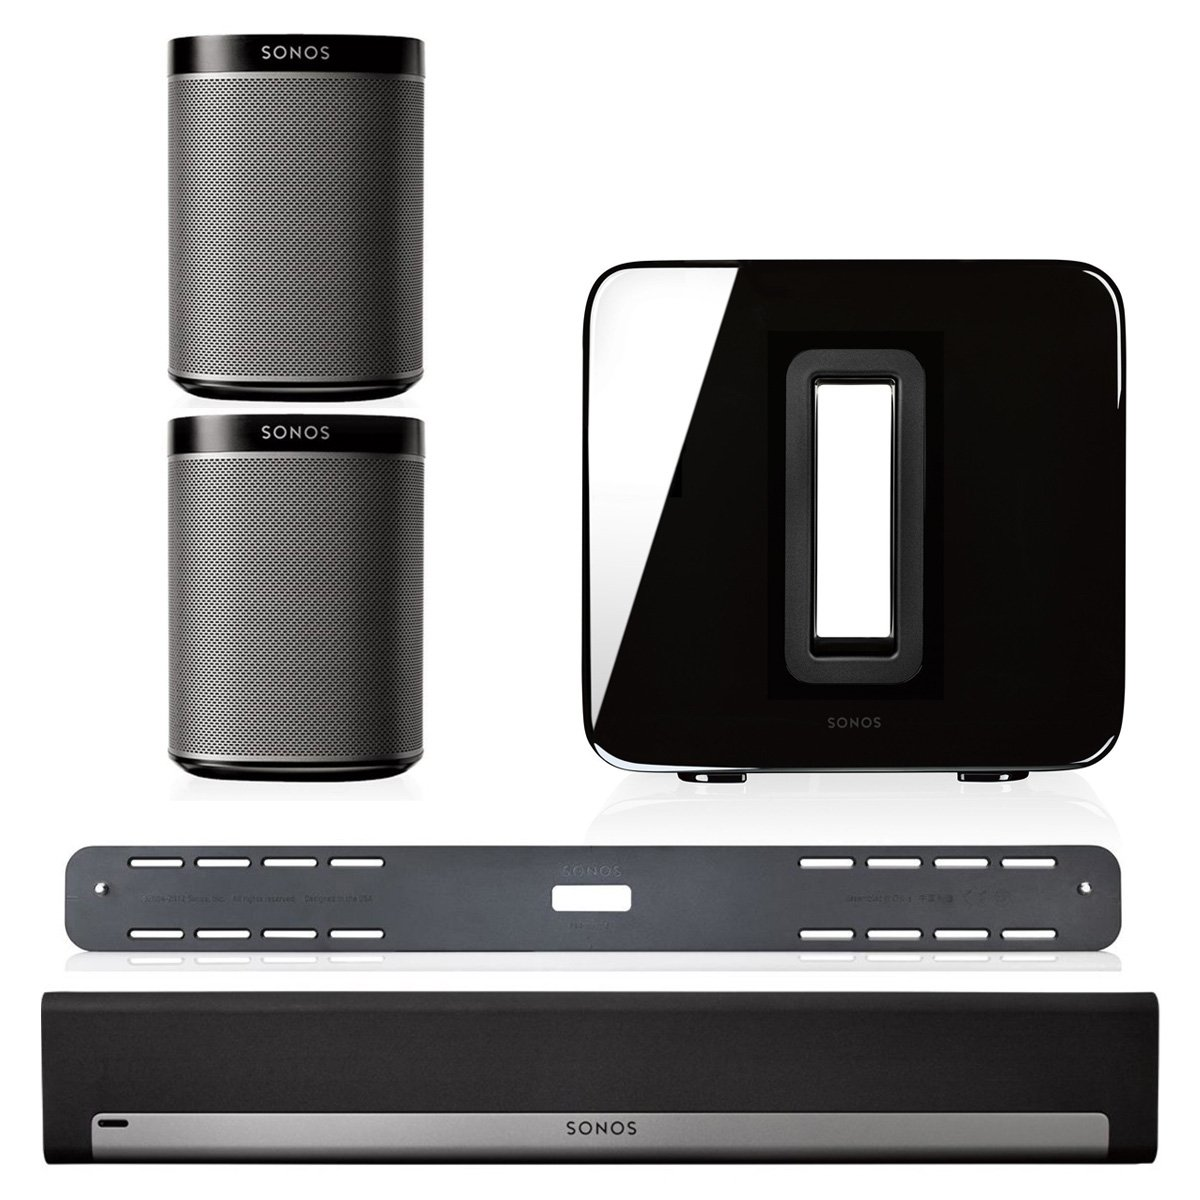 Sonos 5.1 Home Theater System Bundle - PLAYBAR, Wall Mount Kit for PLAYBAR, Wireless SUB & PLAY:1 Pair (Black) by Sonos